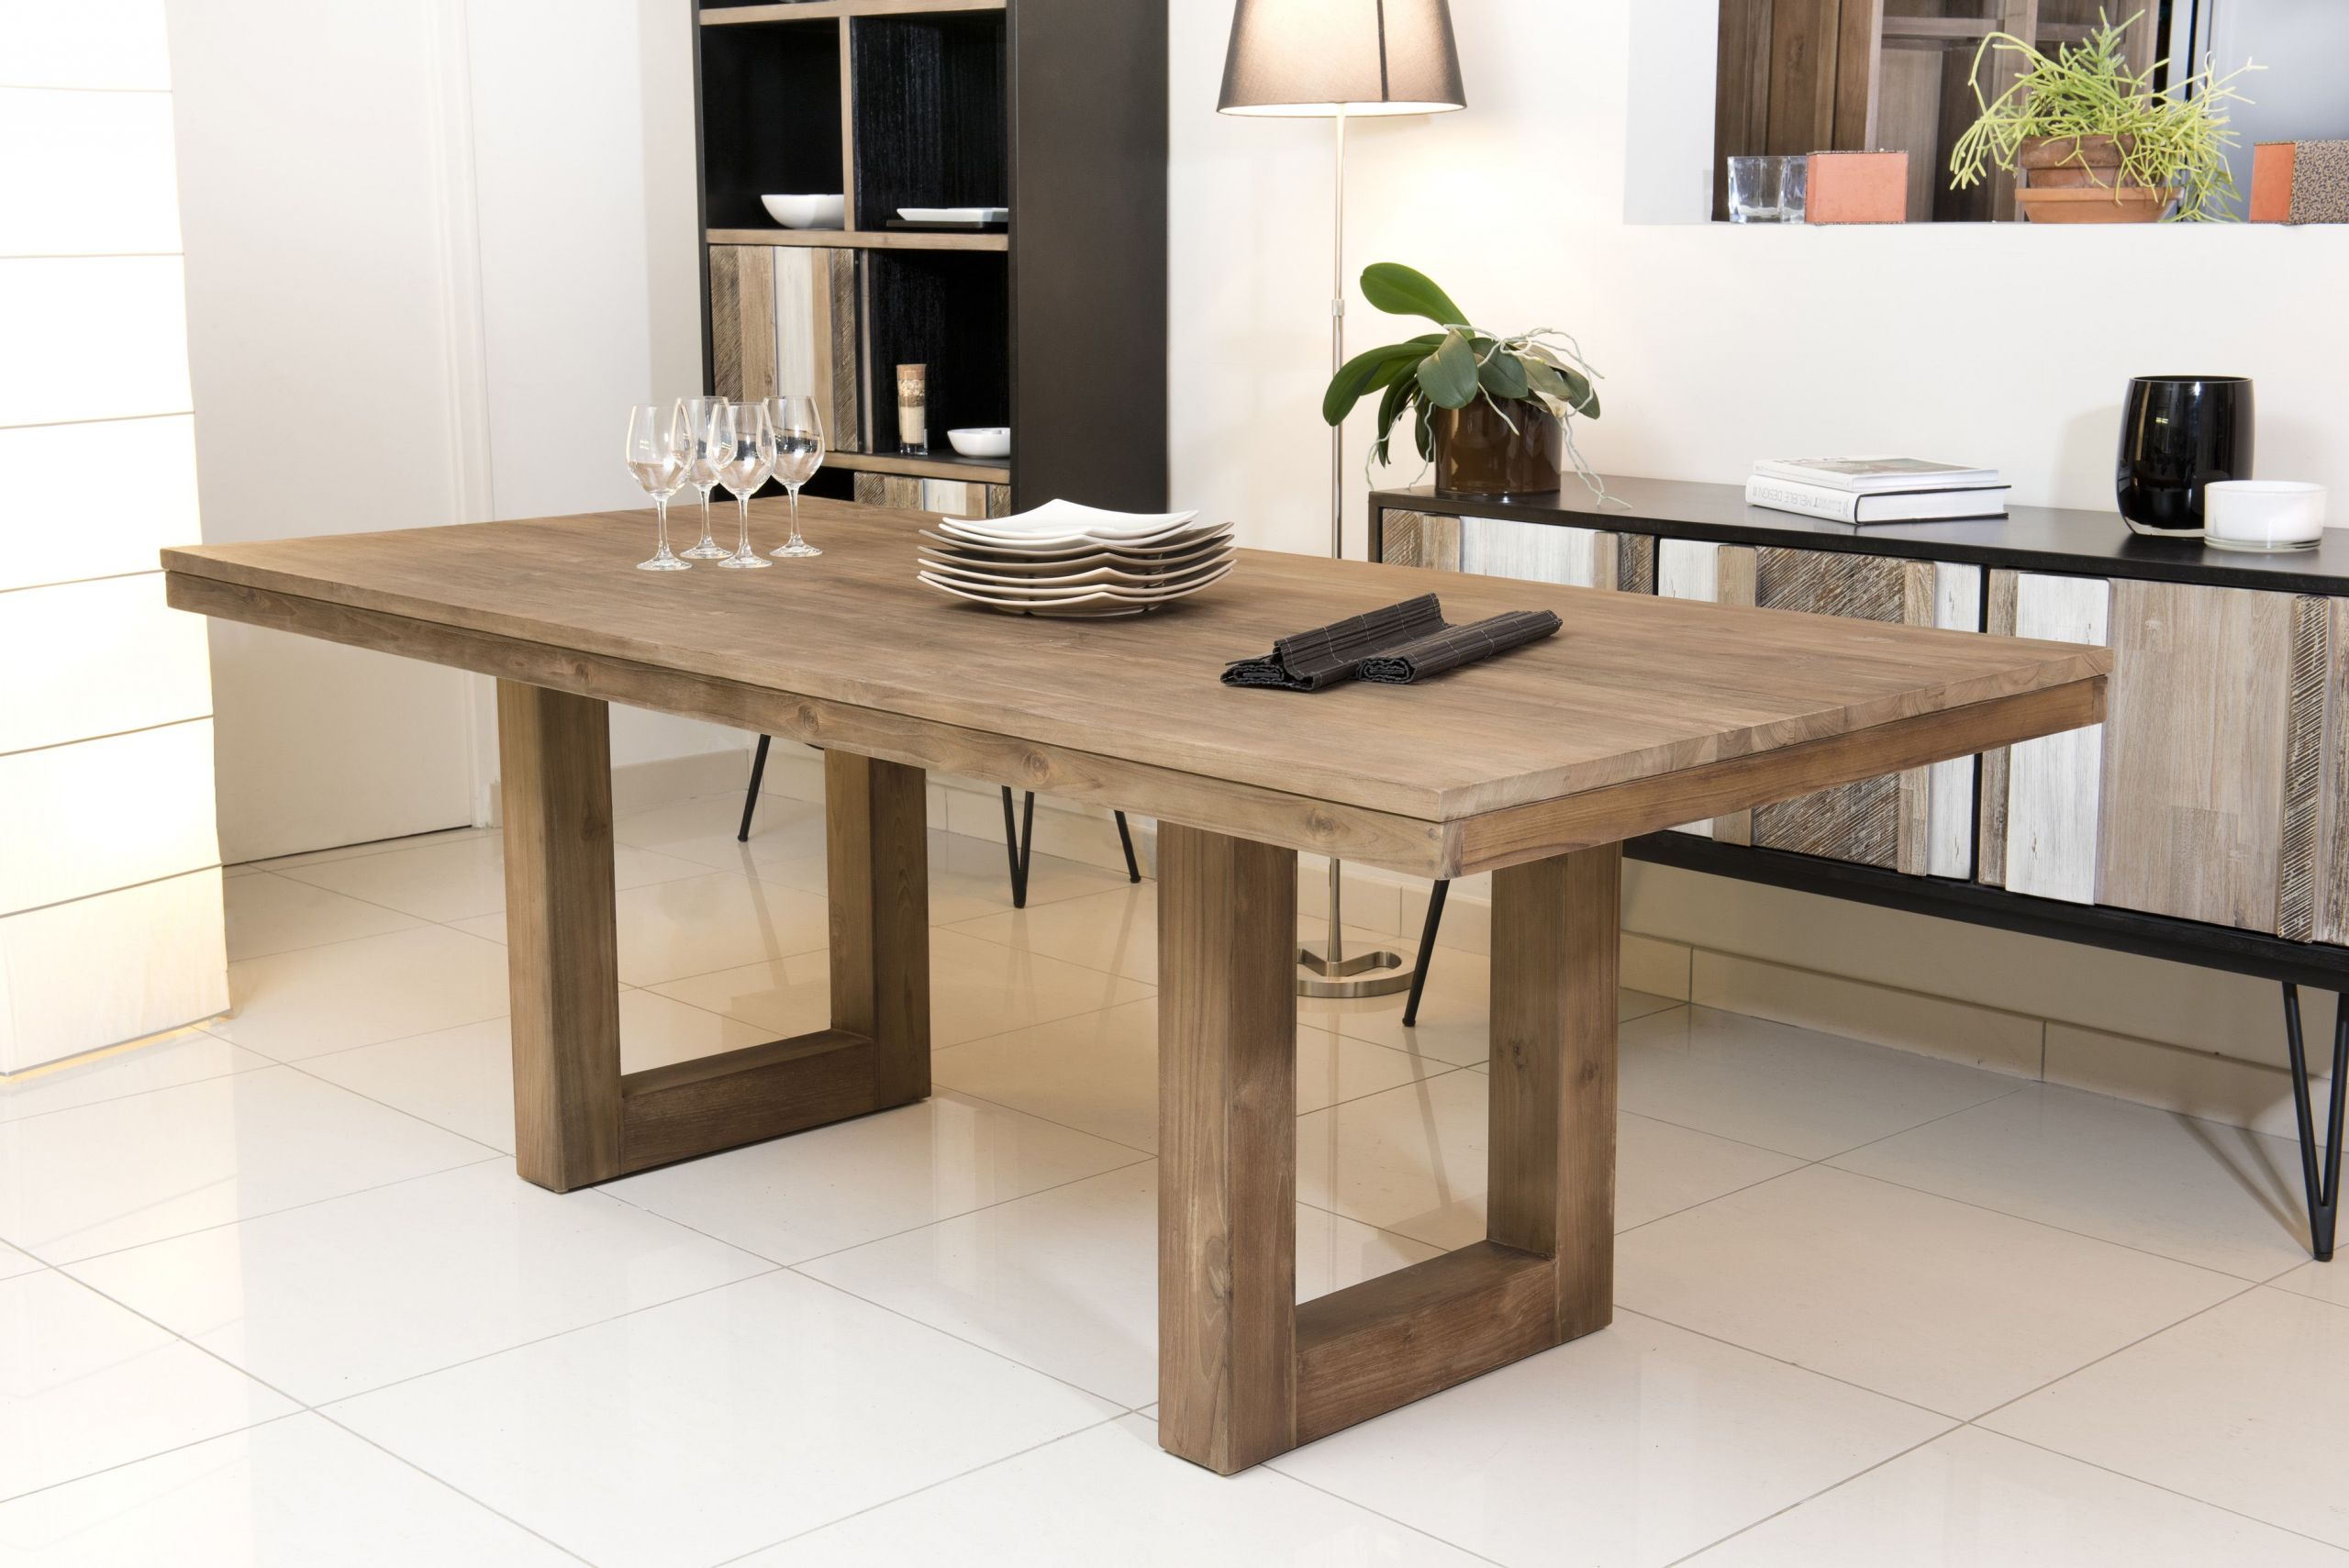 Salon En Teck Frais Table Basse Scandinave En Bois Balkis Of 27 Luxe Salon En Teck